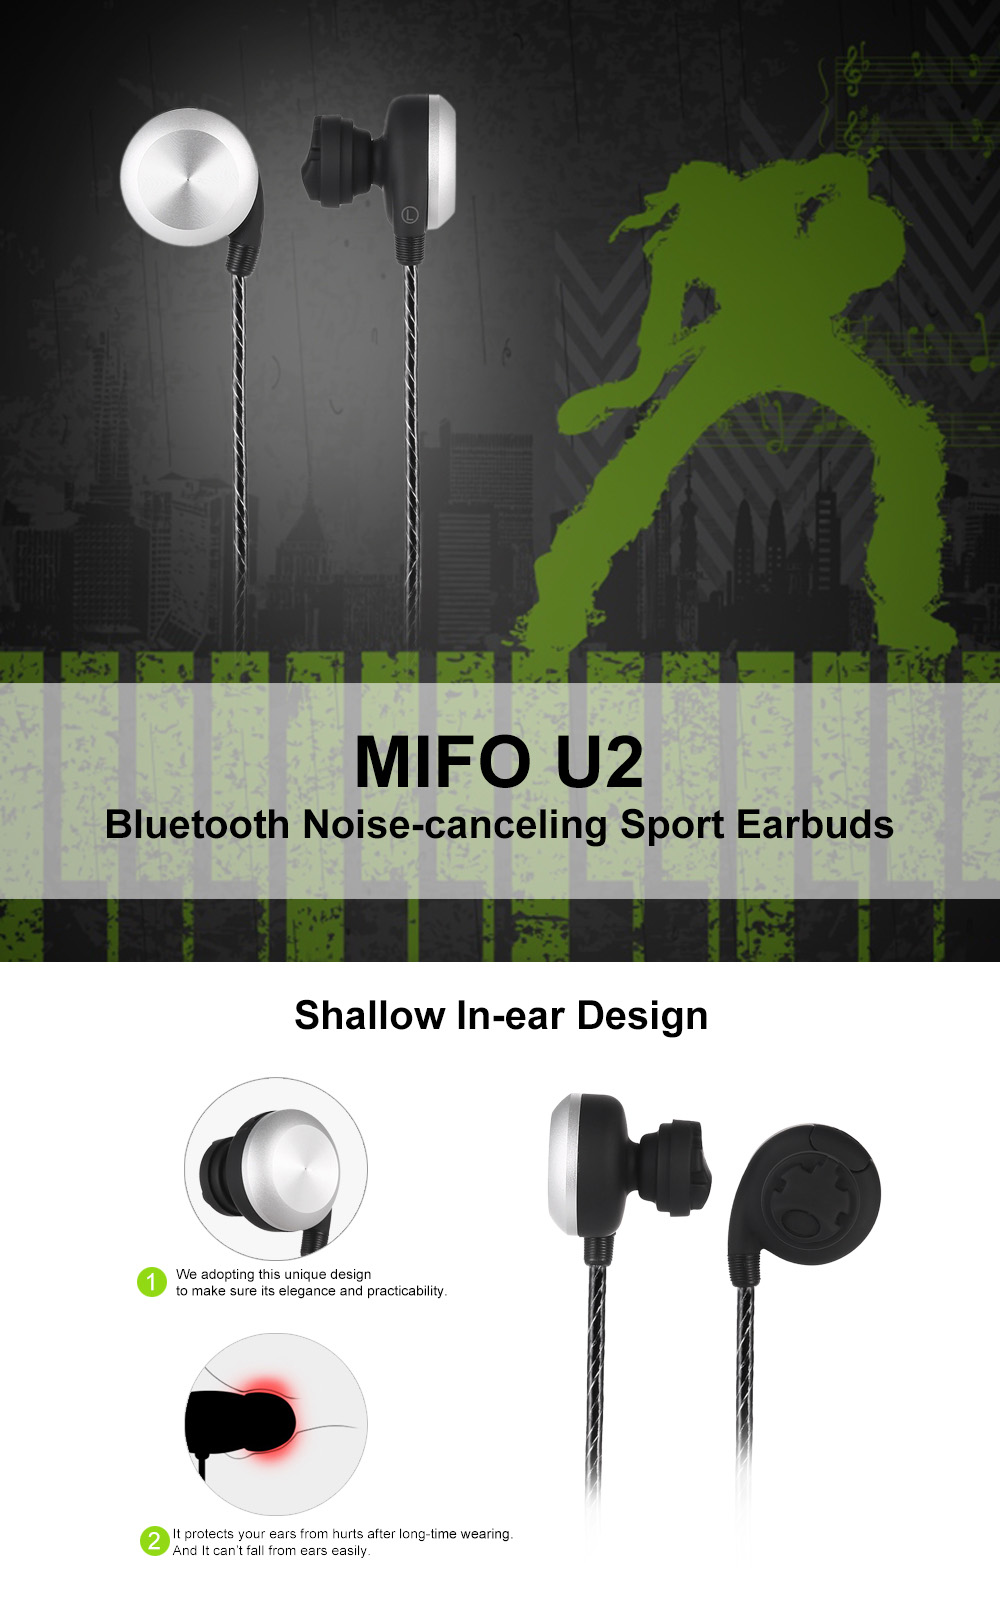 MIFO U2 Magnetic Noise-canceling Bluetooth Earbuds for Sport